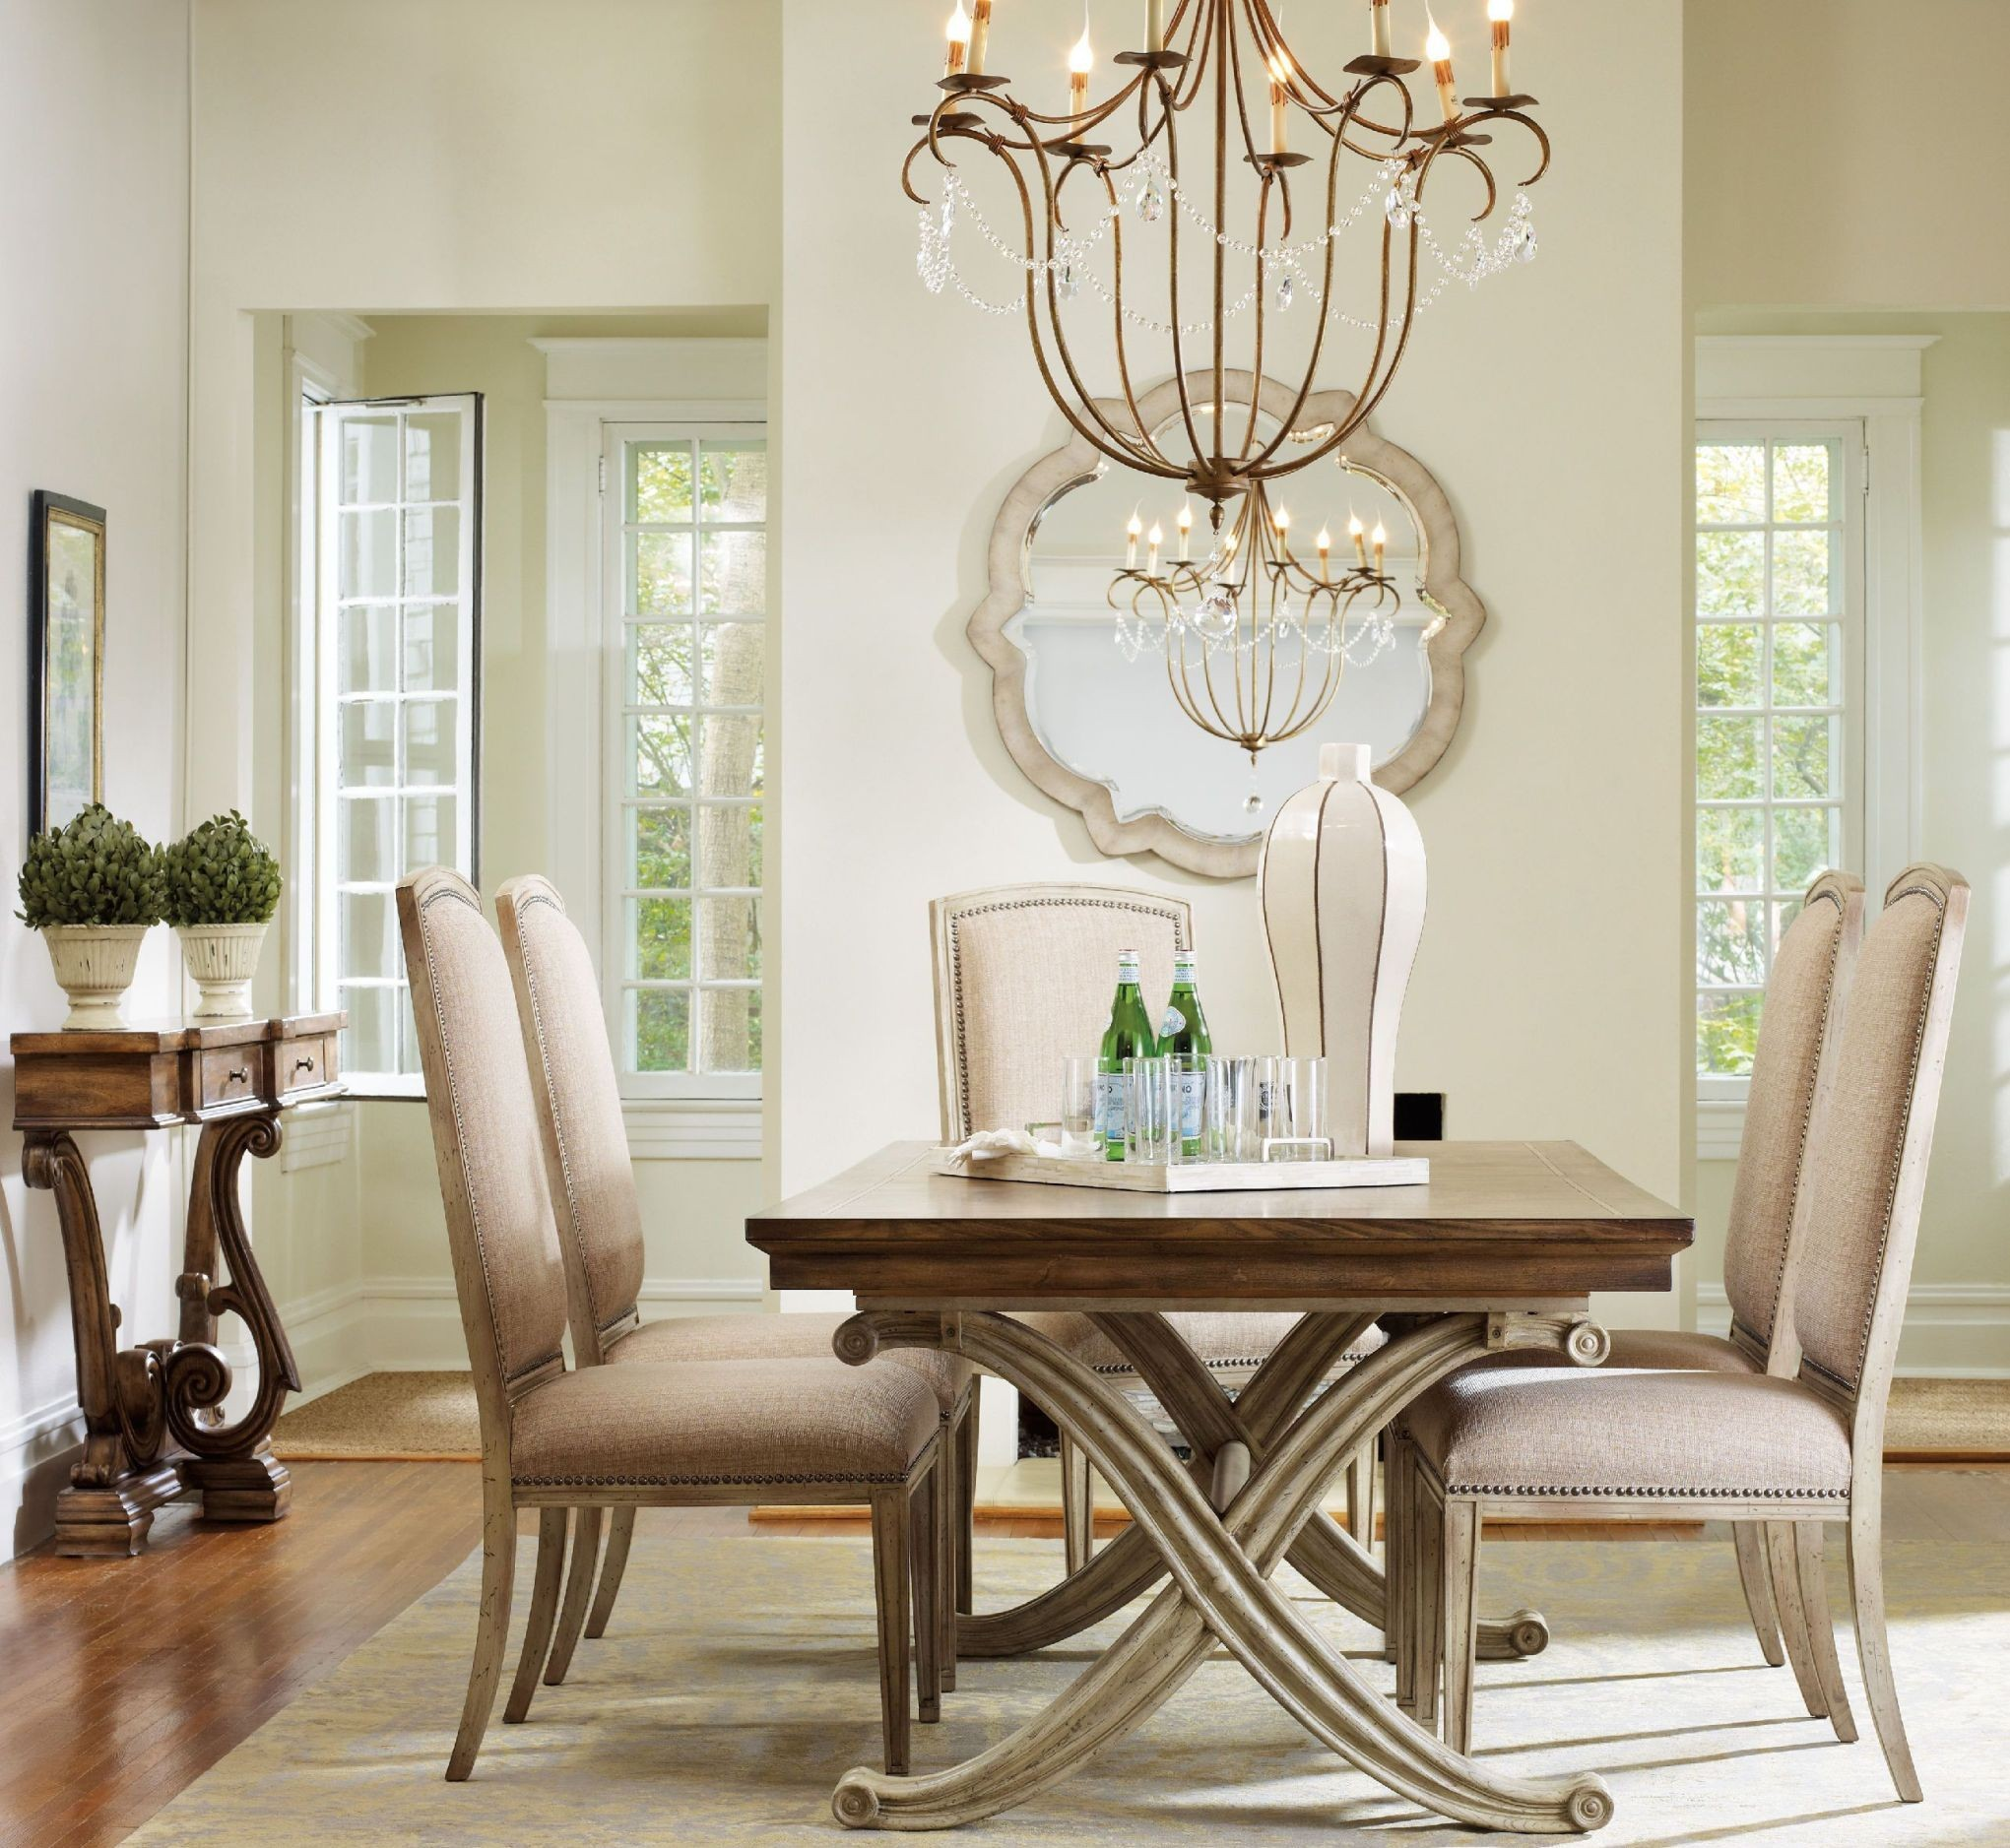 Cream Dining Set: Sanctuary Cream And Brown Rectangular Dining Room Set From